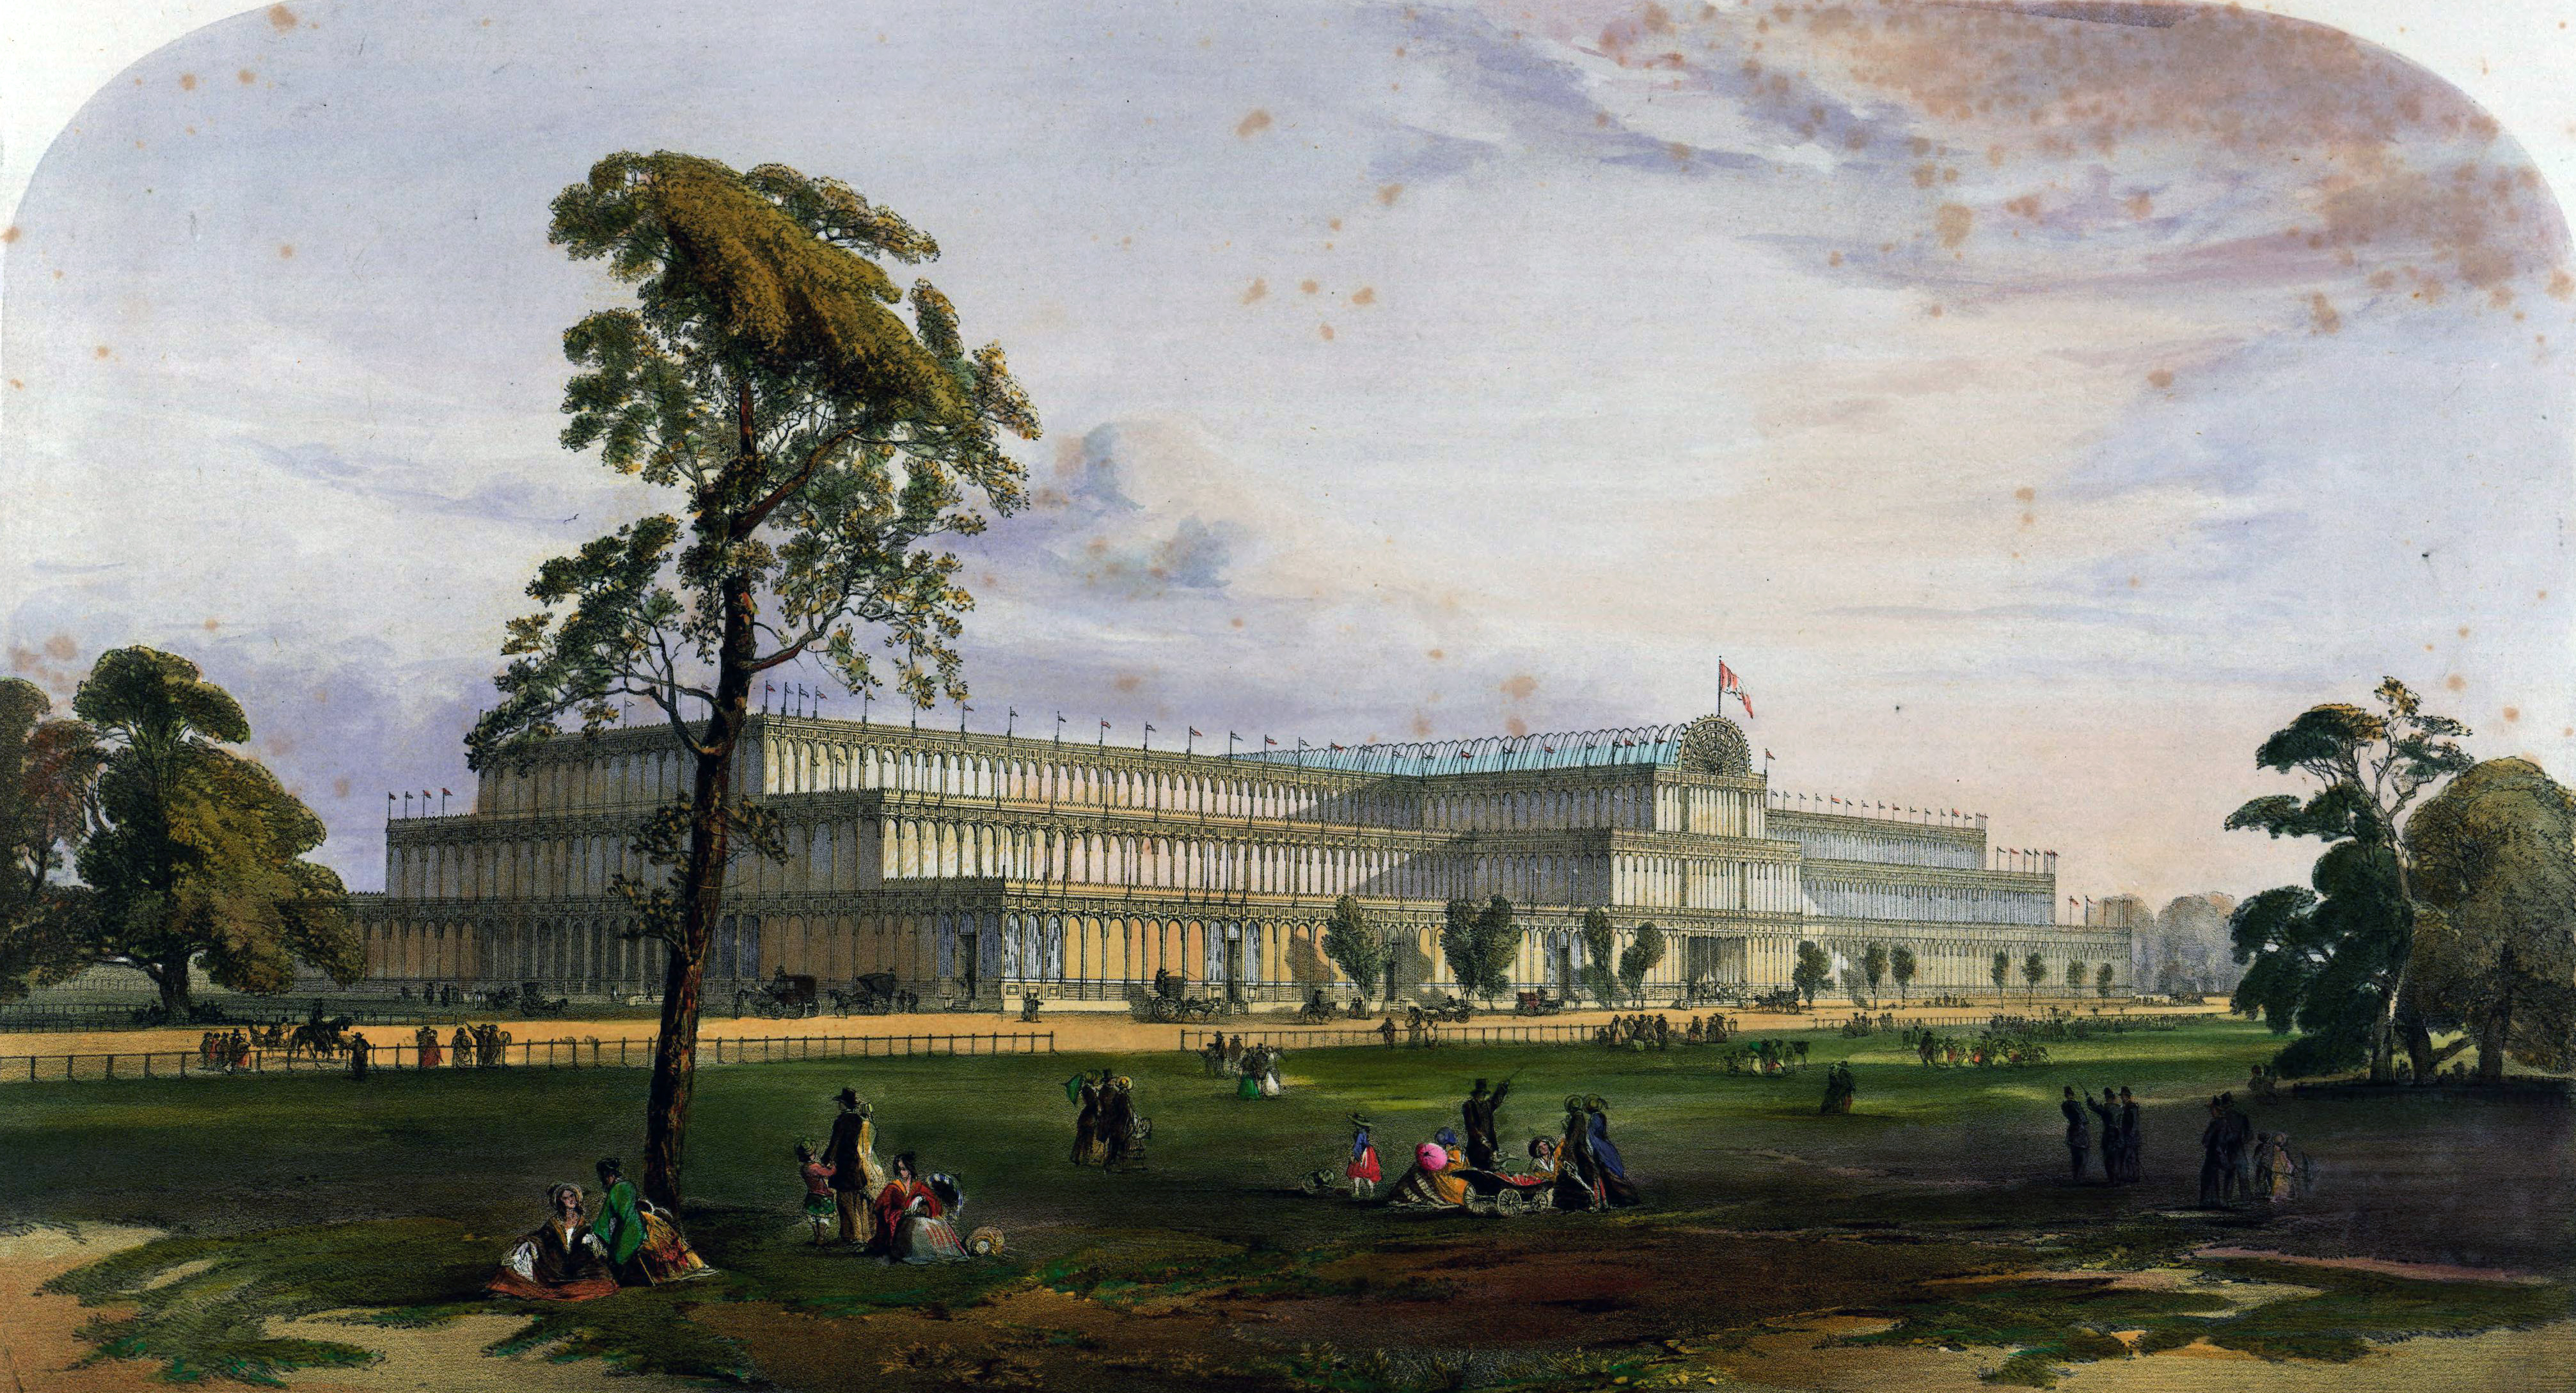 http://upload.wikimedia.org/wikipedia/commons/9/92/Crystal_Palace_from_the_northeast_from_Dickinson%27s_Comprehensive_Pictures_of_the_Great_Exhibition_of_1851._1854.jpg